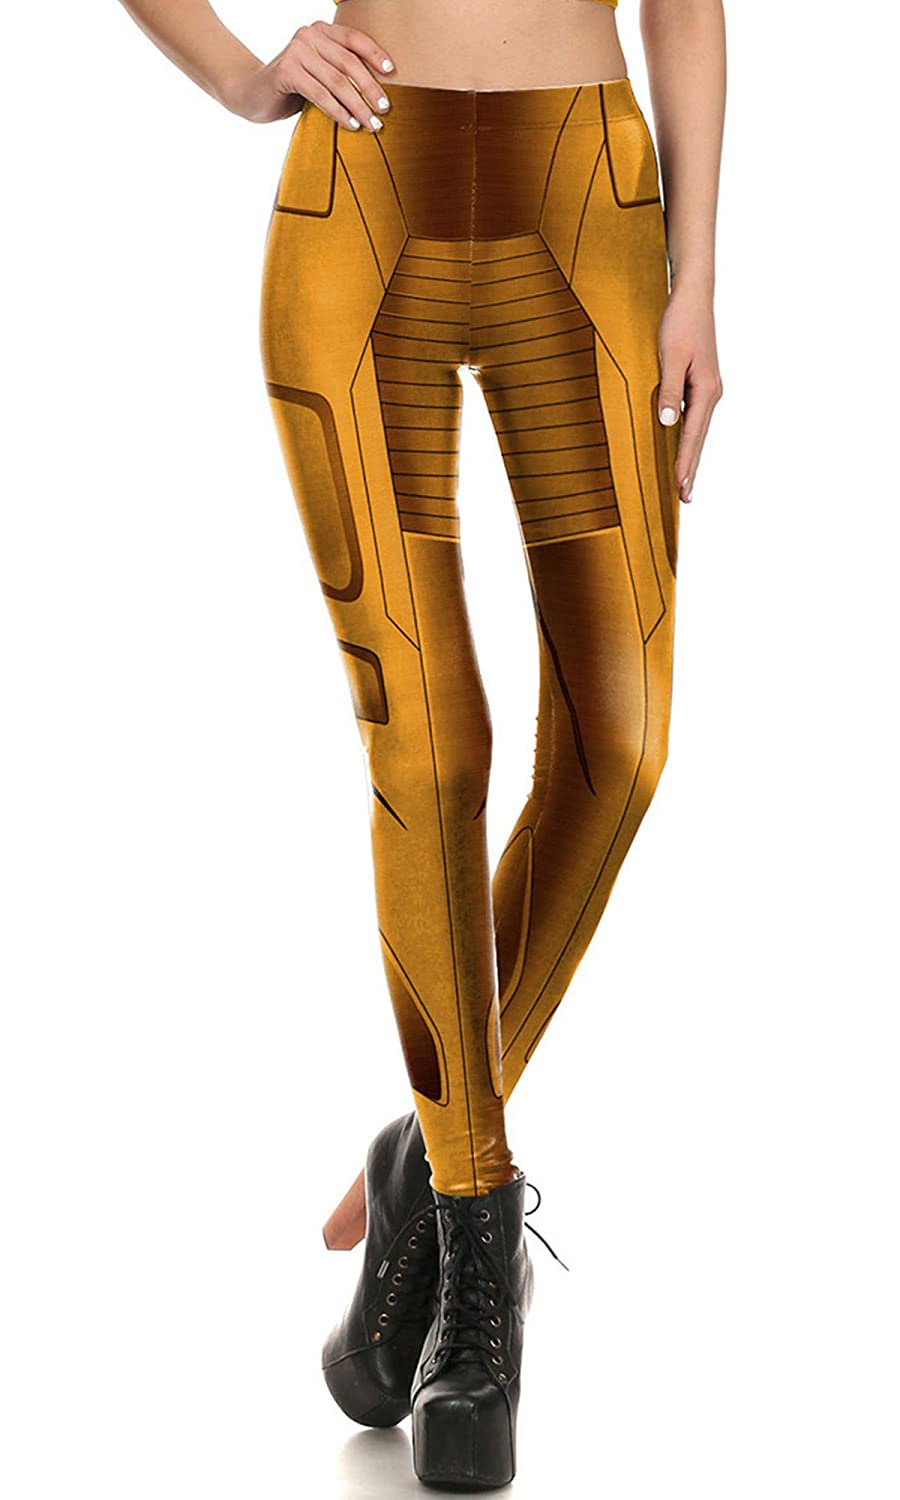 F style Womens 3D Printed Seamless Character Stretch Leggings High Waist Slim Pencil Pants